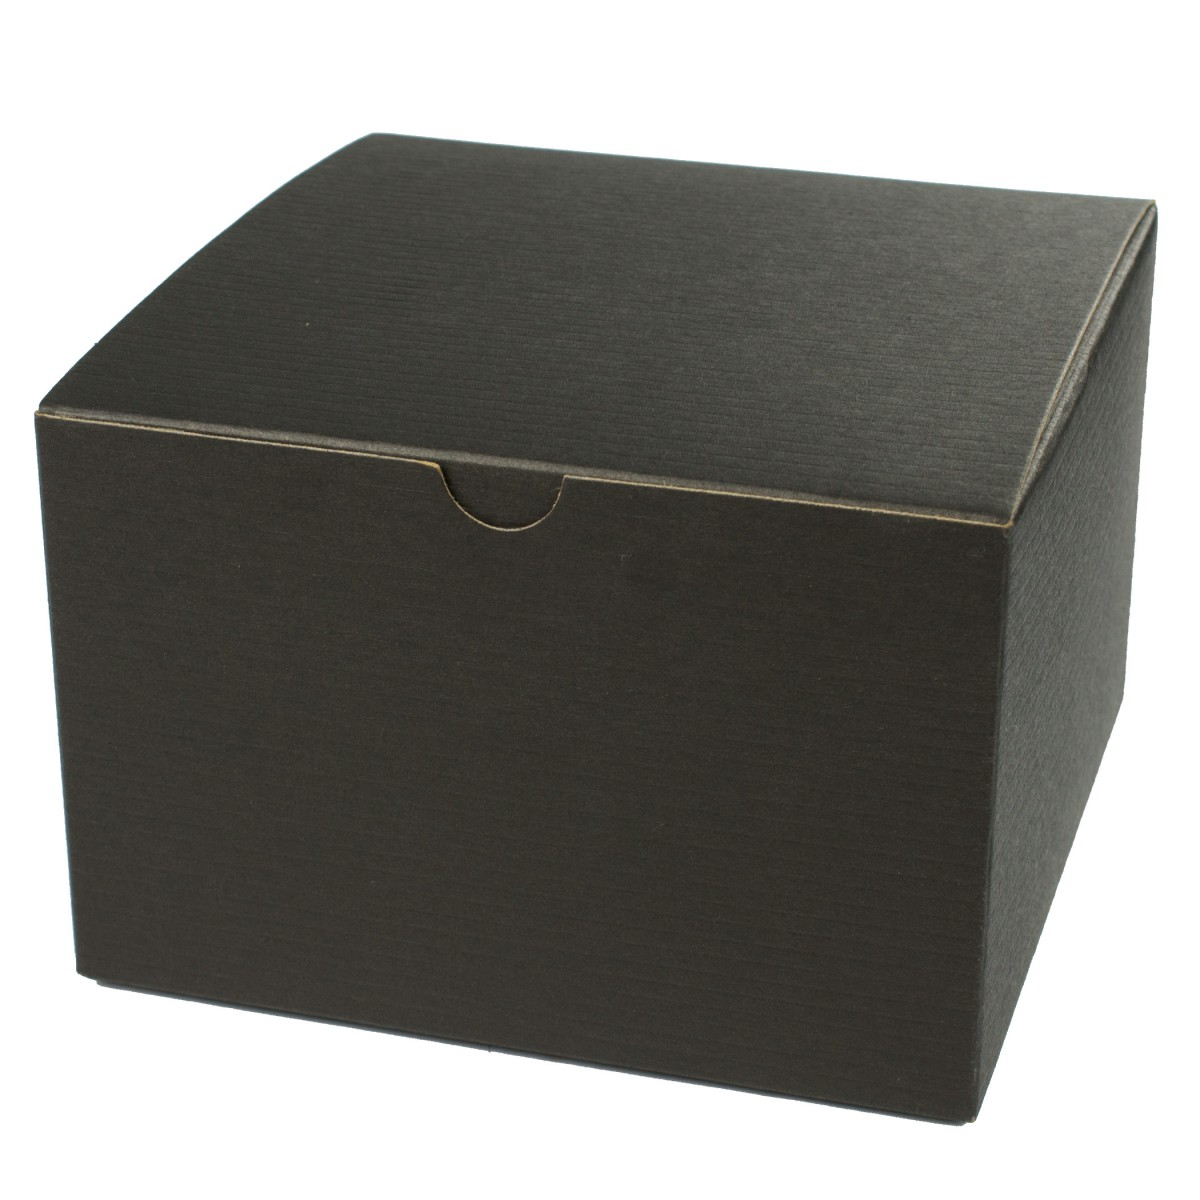 4 x 4 x 4 BLACK PINSTRIPE TUCK-TOP GIFT BOXES